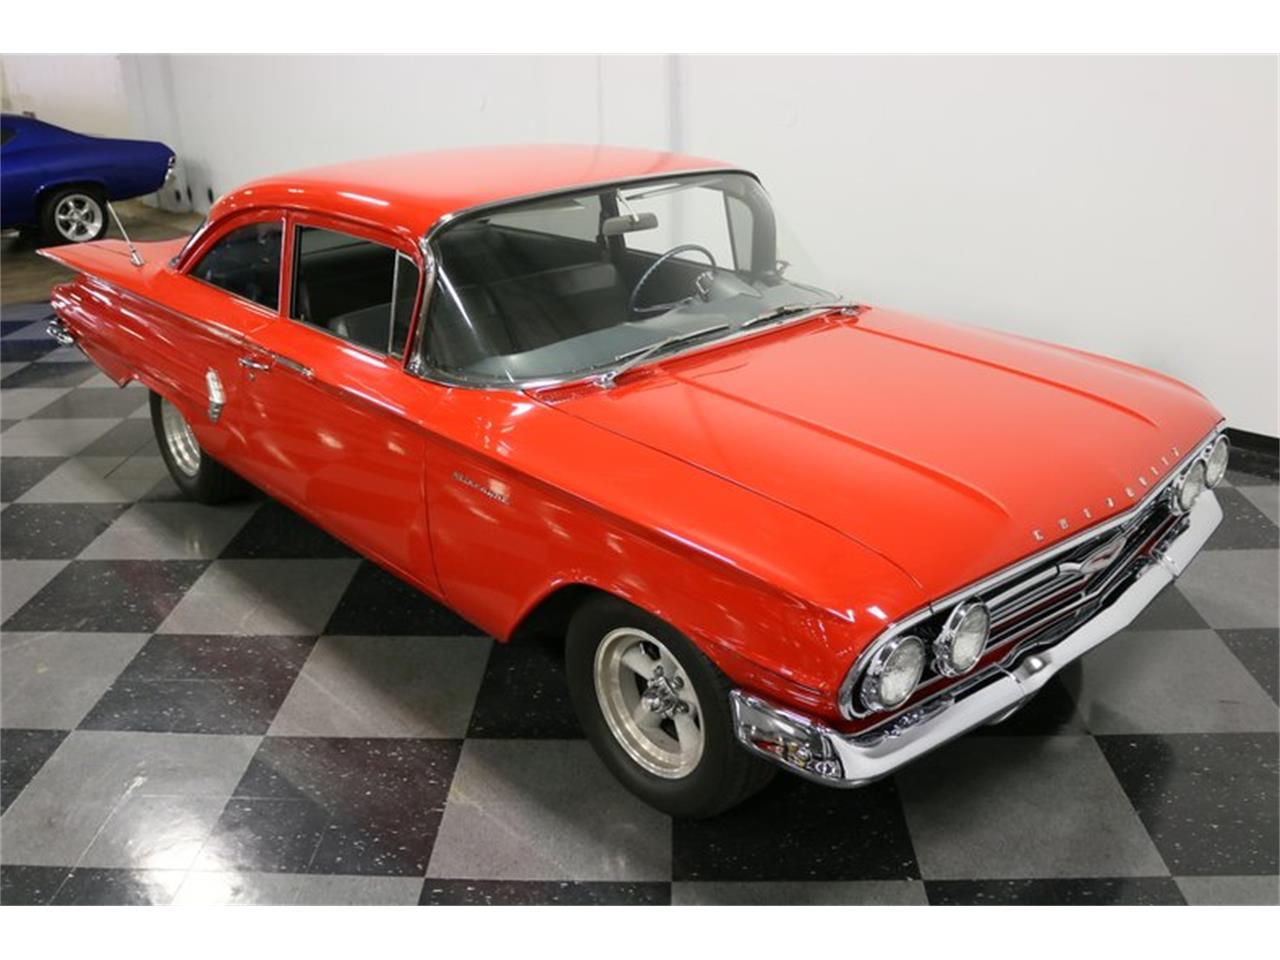 For Sale: 1960 Chevrolet Biscayne in Ft Worth, Texas